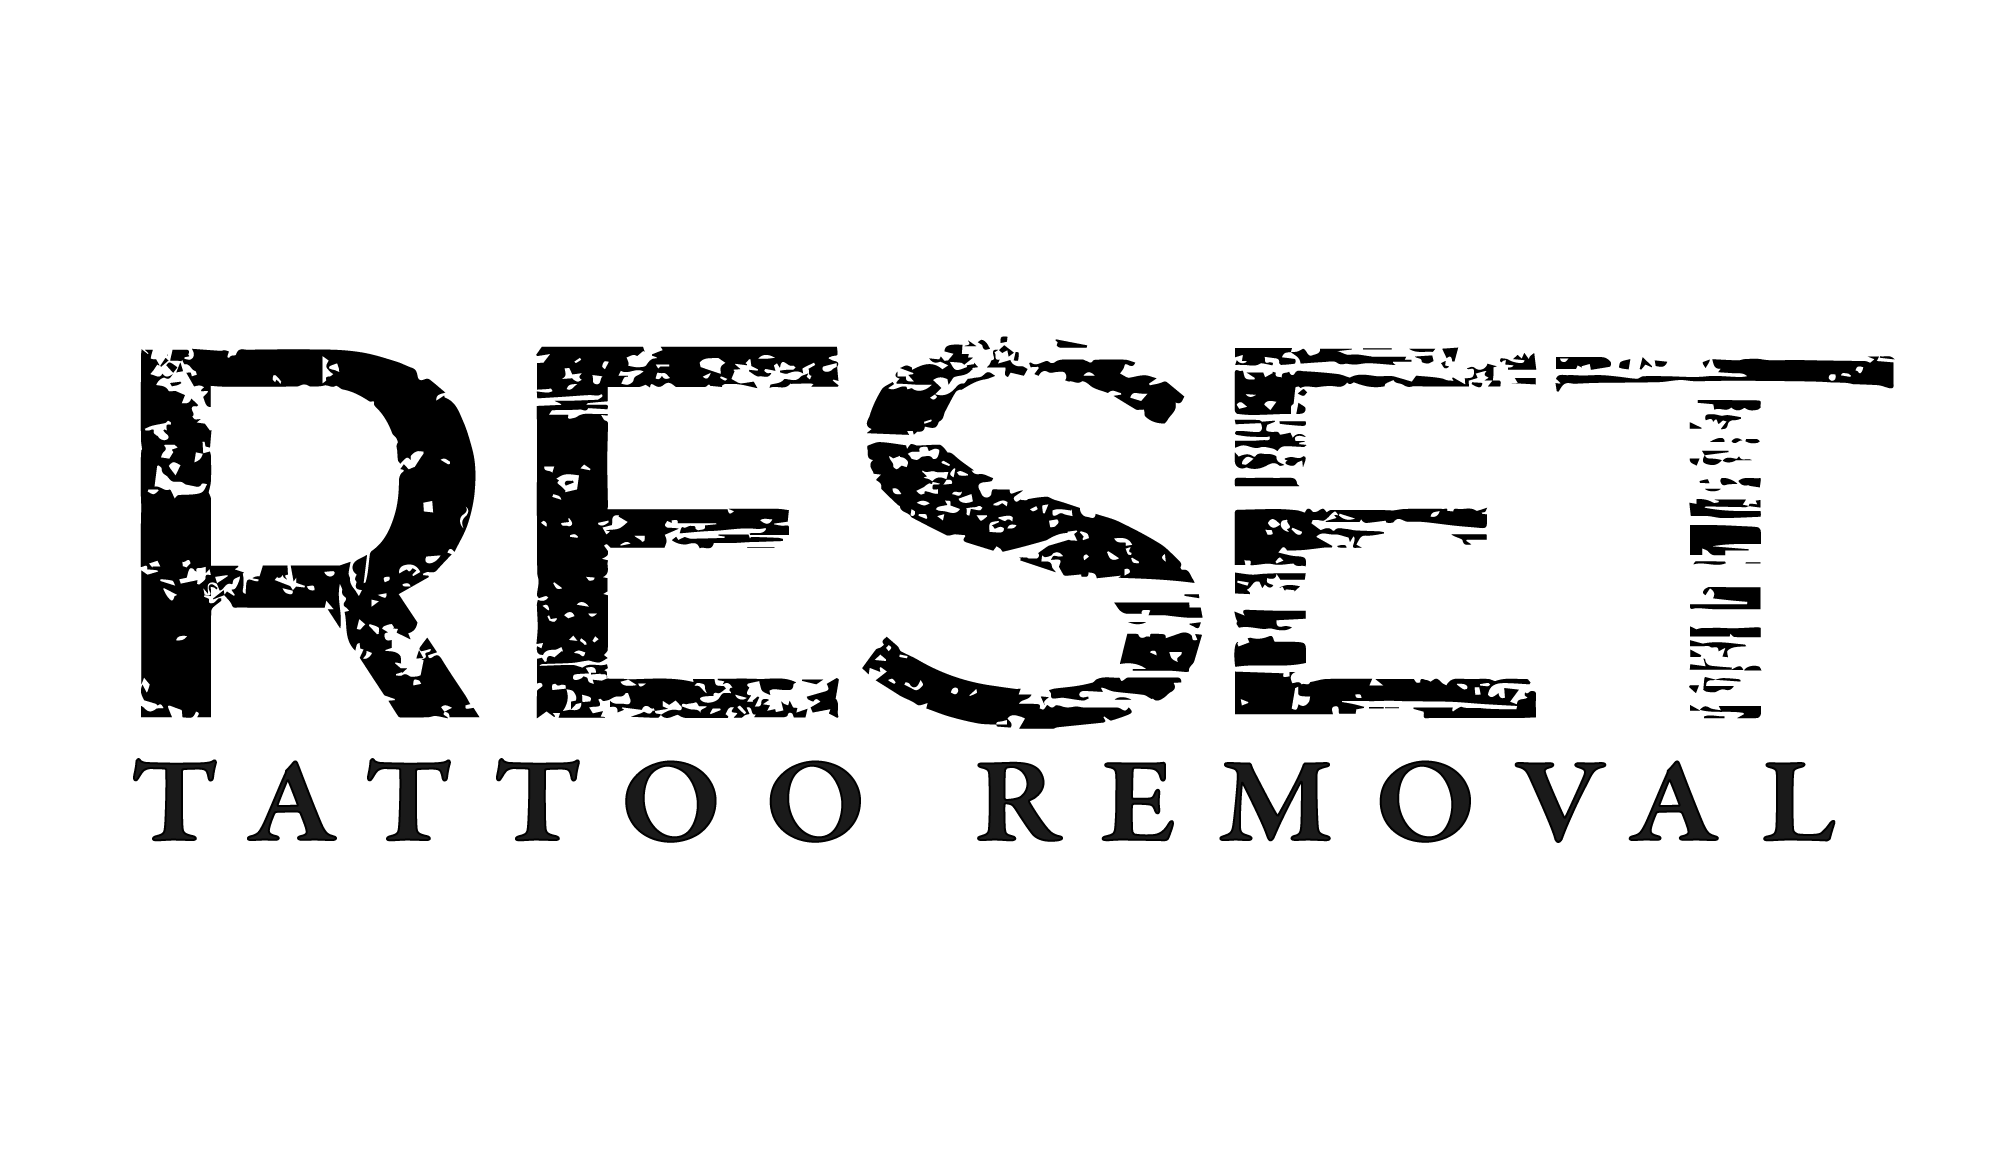 Reset Tattoo Removal